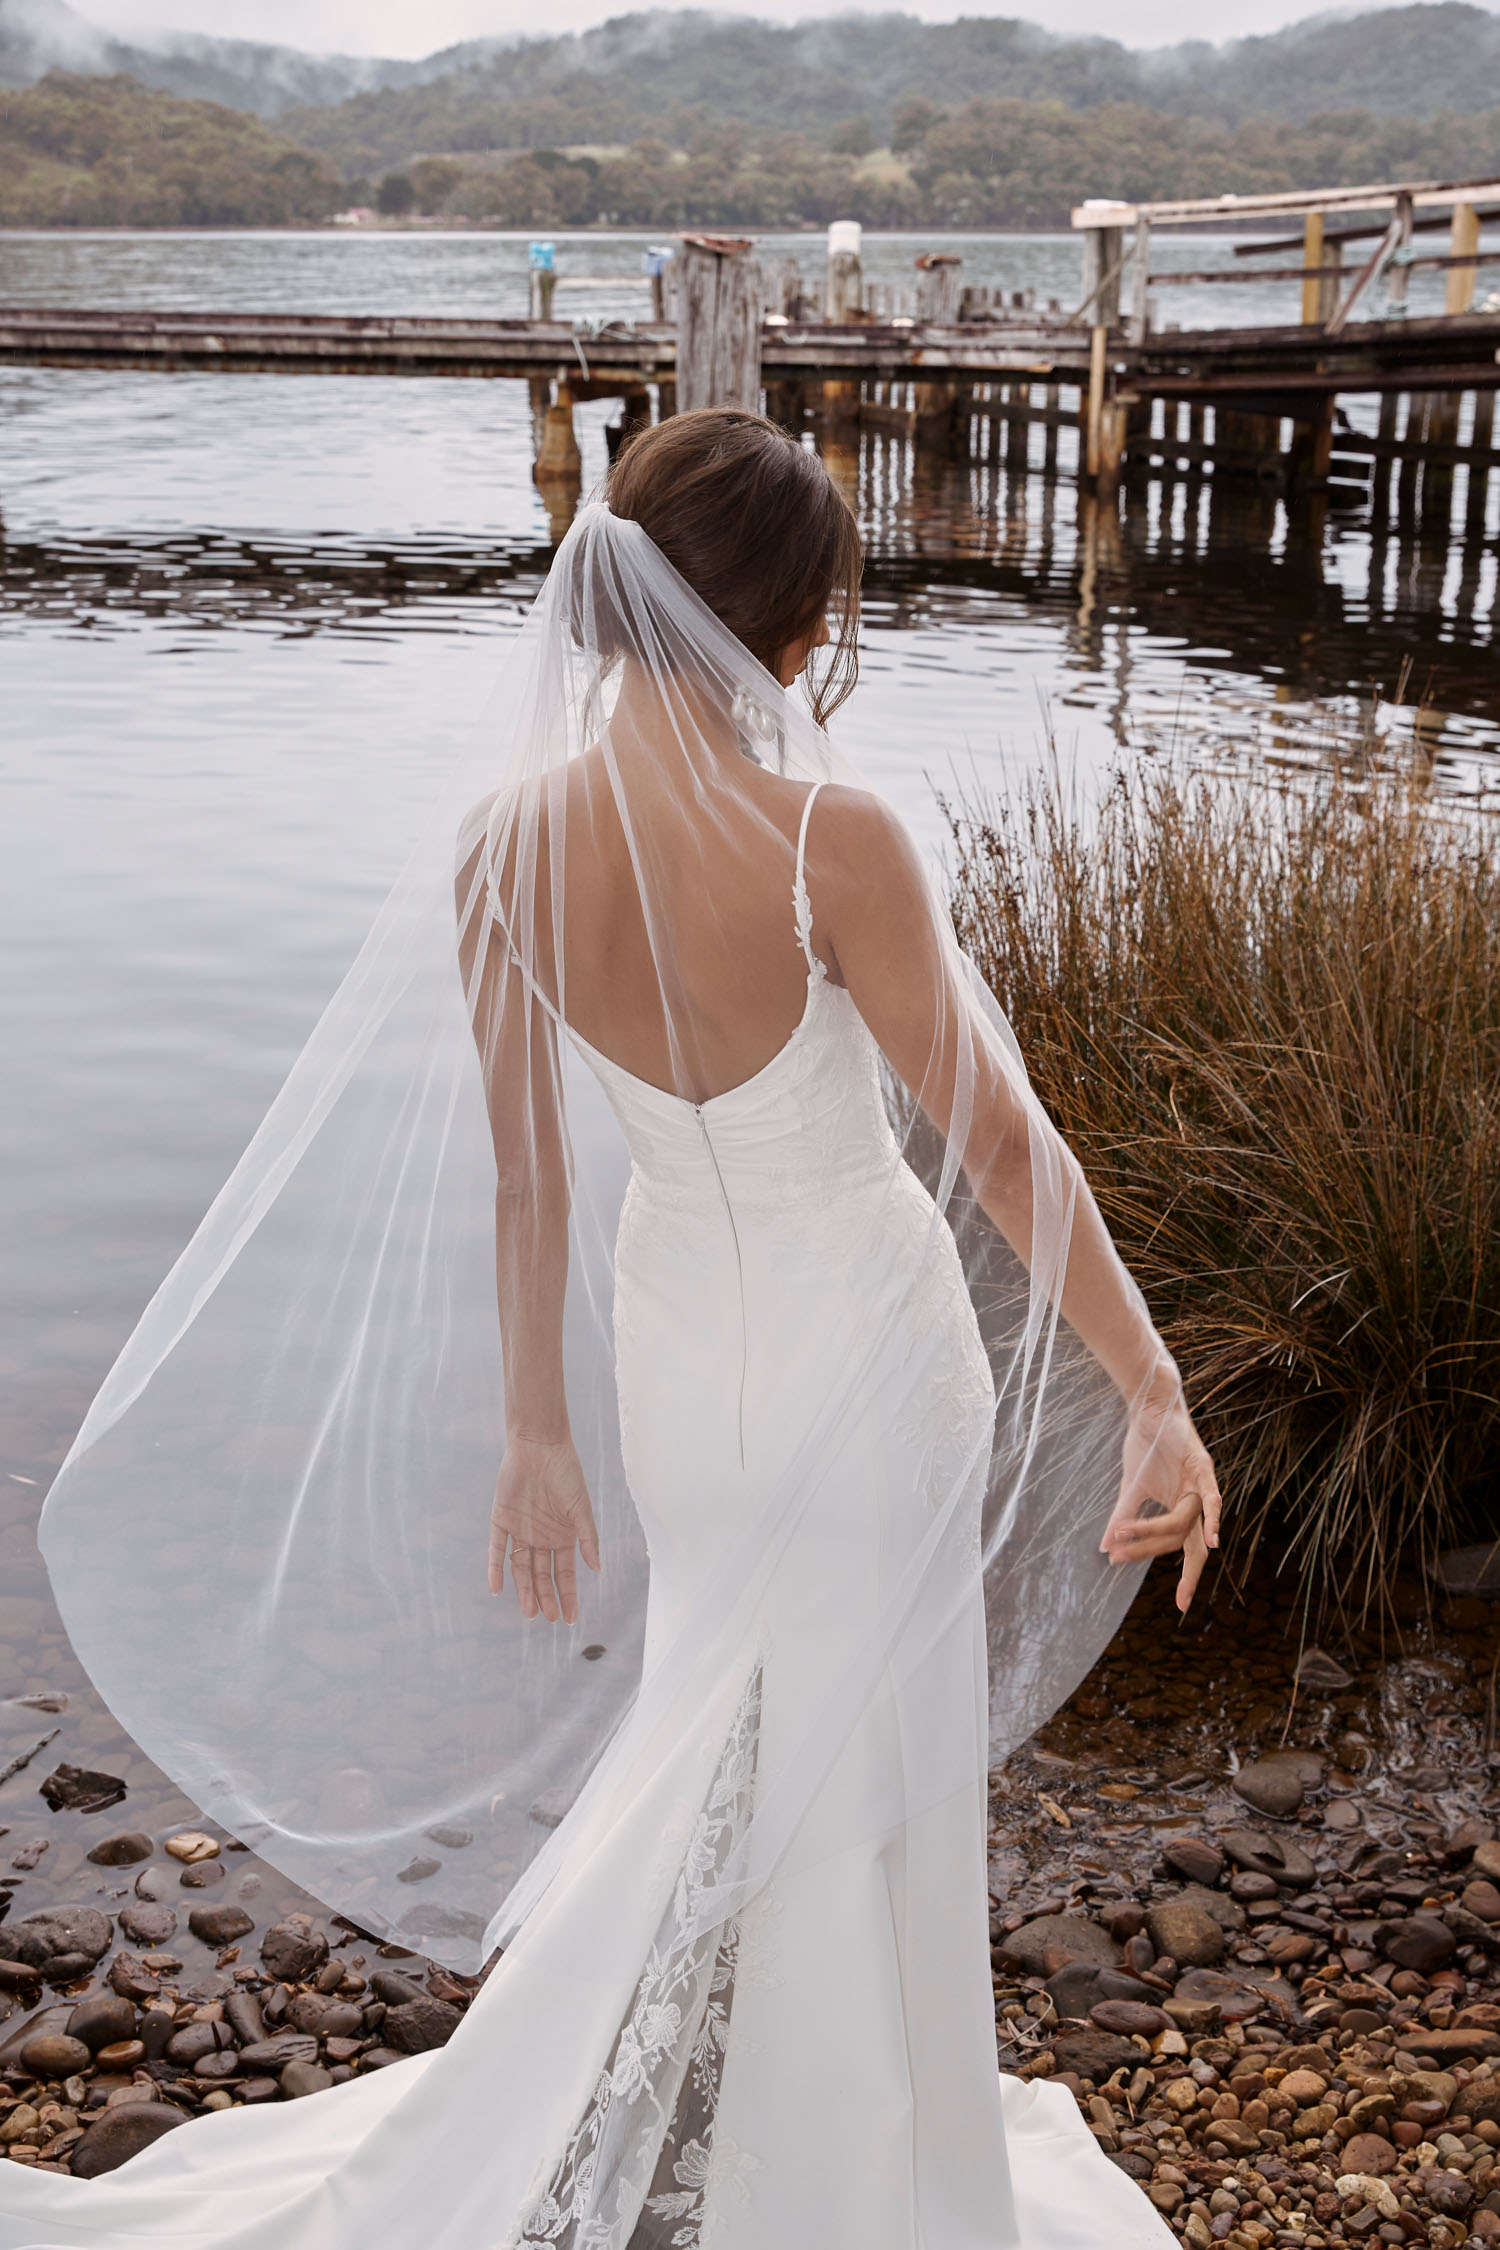 CONNOR-ML20025-FULL-LENGTH-CREPE-GOWN-WITH-V-NECKLINE-THIN-STRAPS-LACE-APPLIQUES-SCOOP-BACK-ZIPPER-CLOSURE-WEDDING-DRESS-MATCHING-VEIL-MADI-LANE-BRIDAL-10